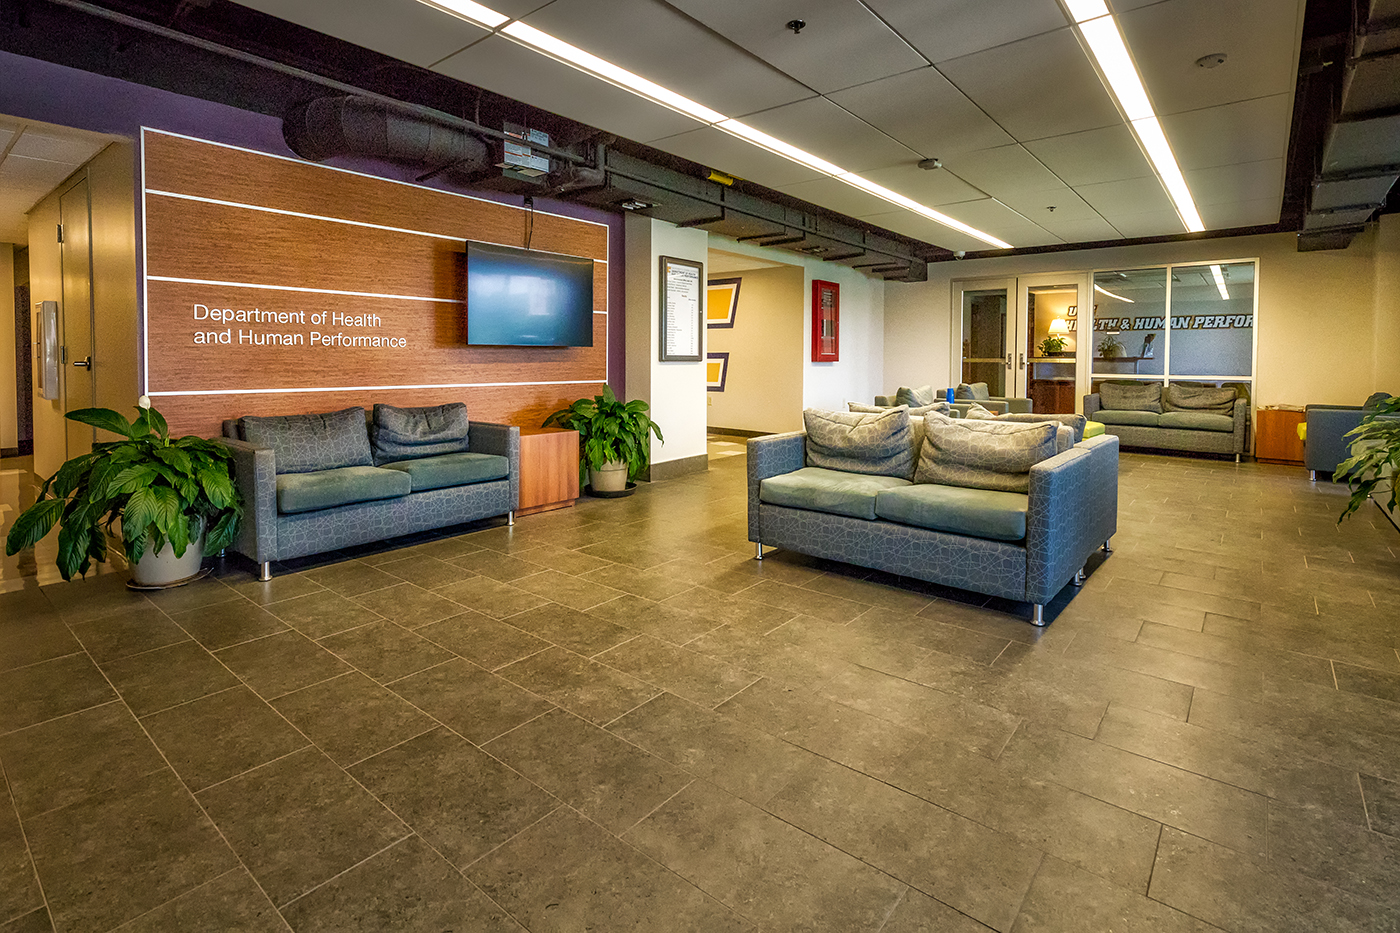 The redesigned interior of the Metropolitan Building offers offices, study spaces for students, and many classrooms and labs throughout the 3 story facility.